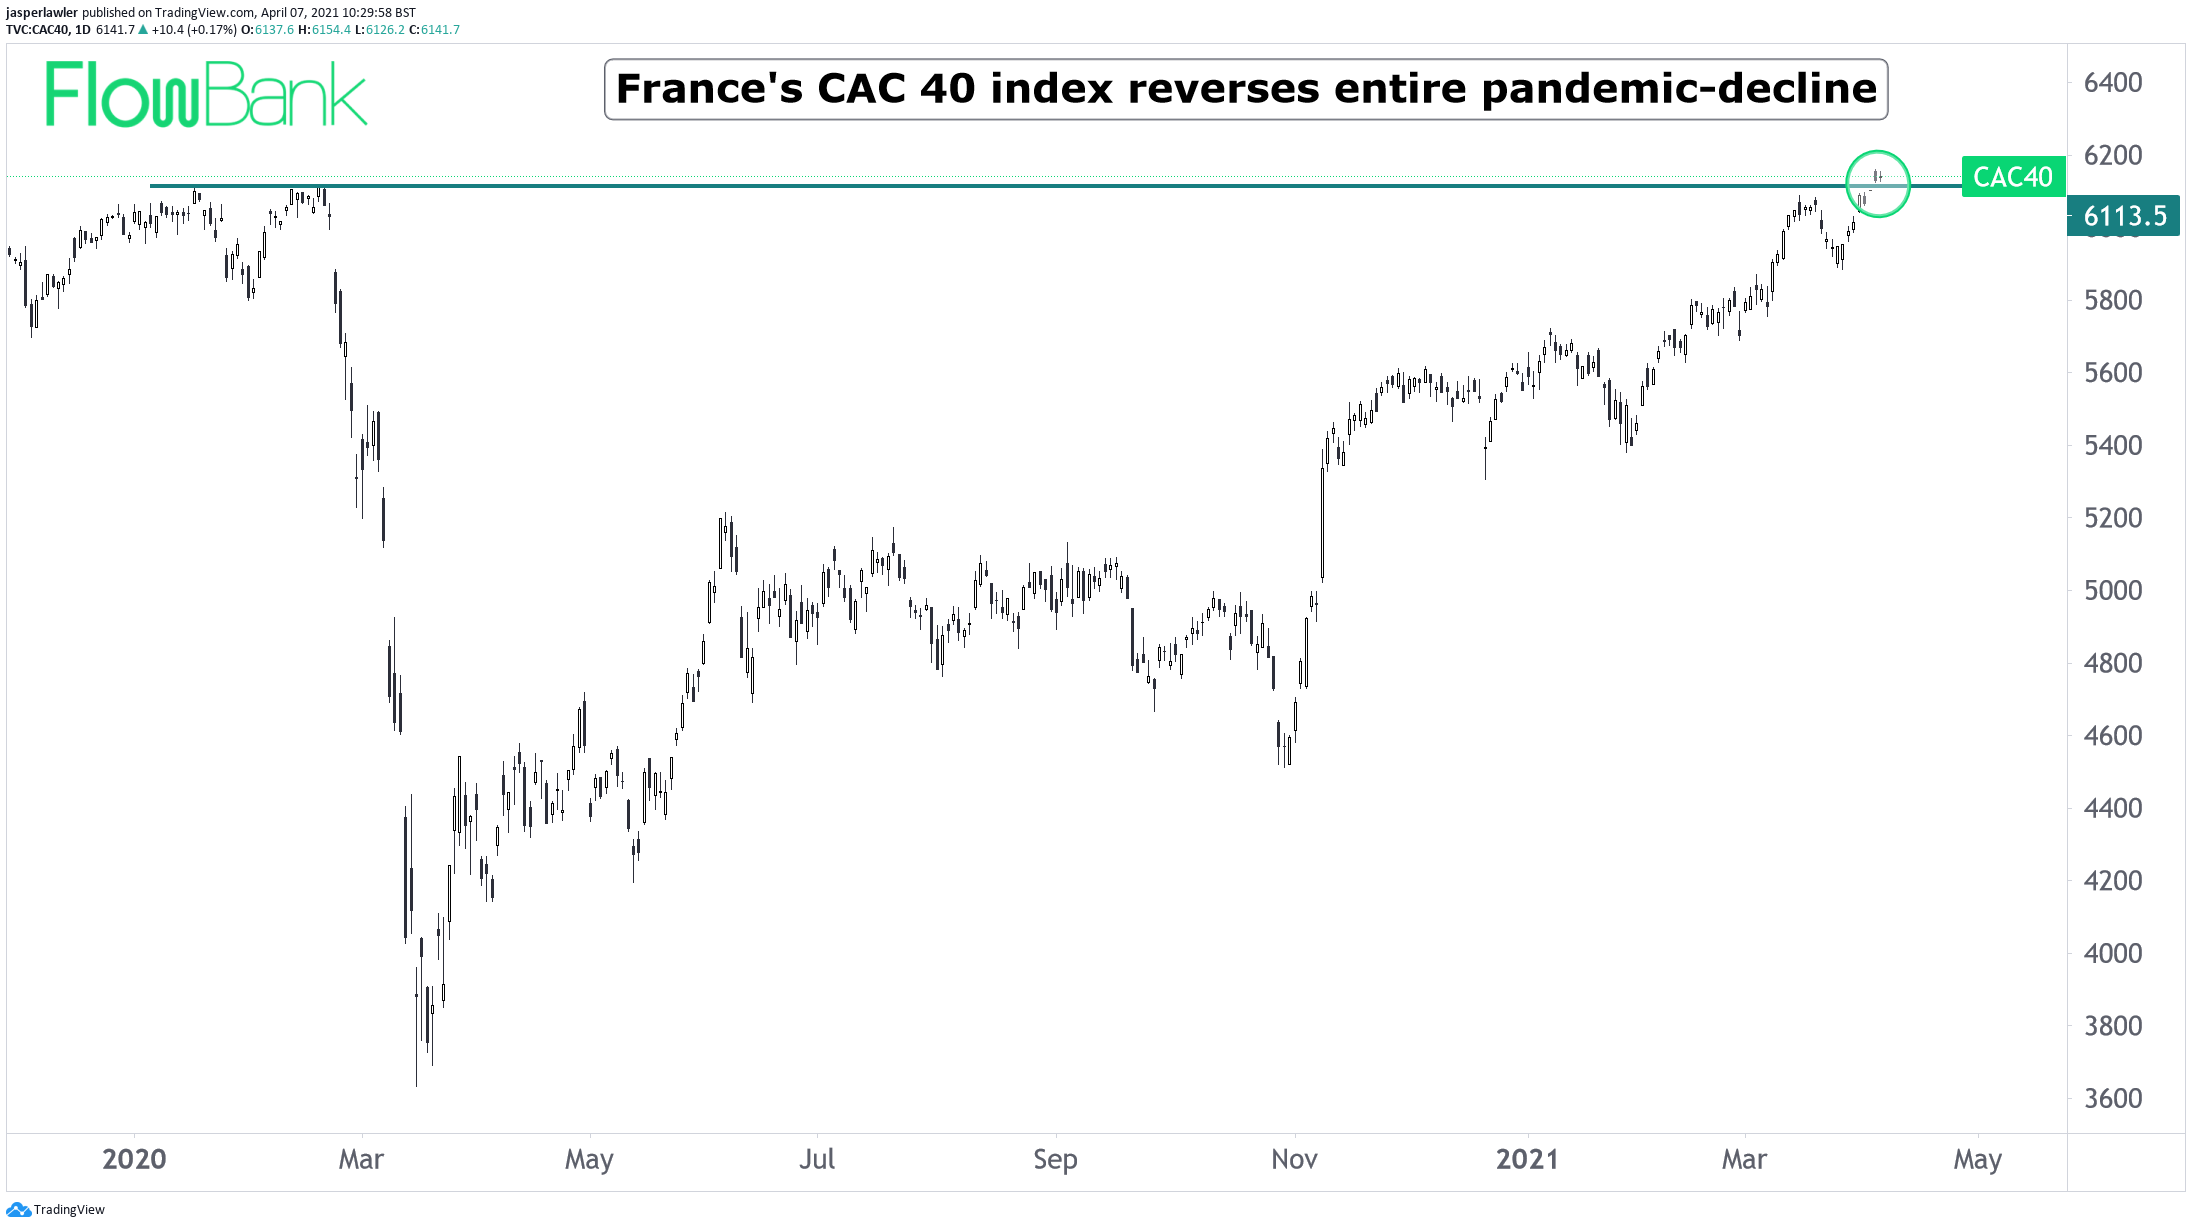 French stocks back in vogue - CAC 40 reverses entire pandemic decline